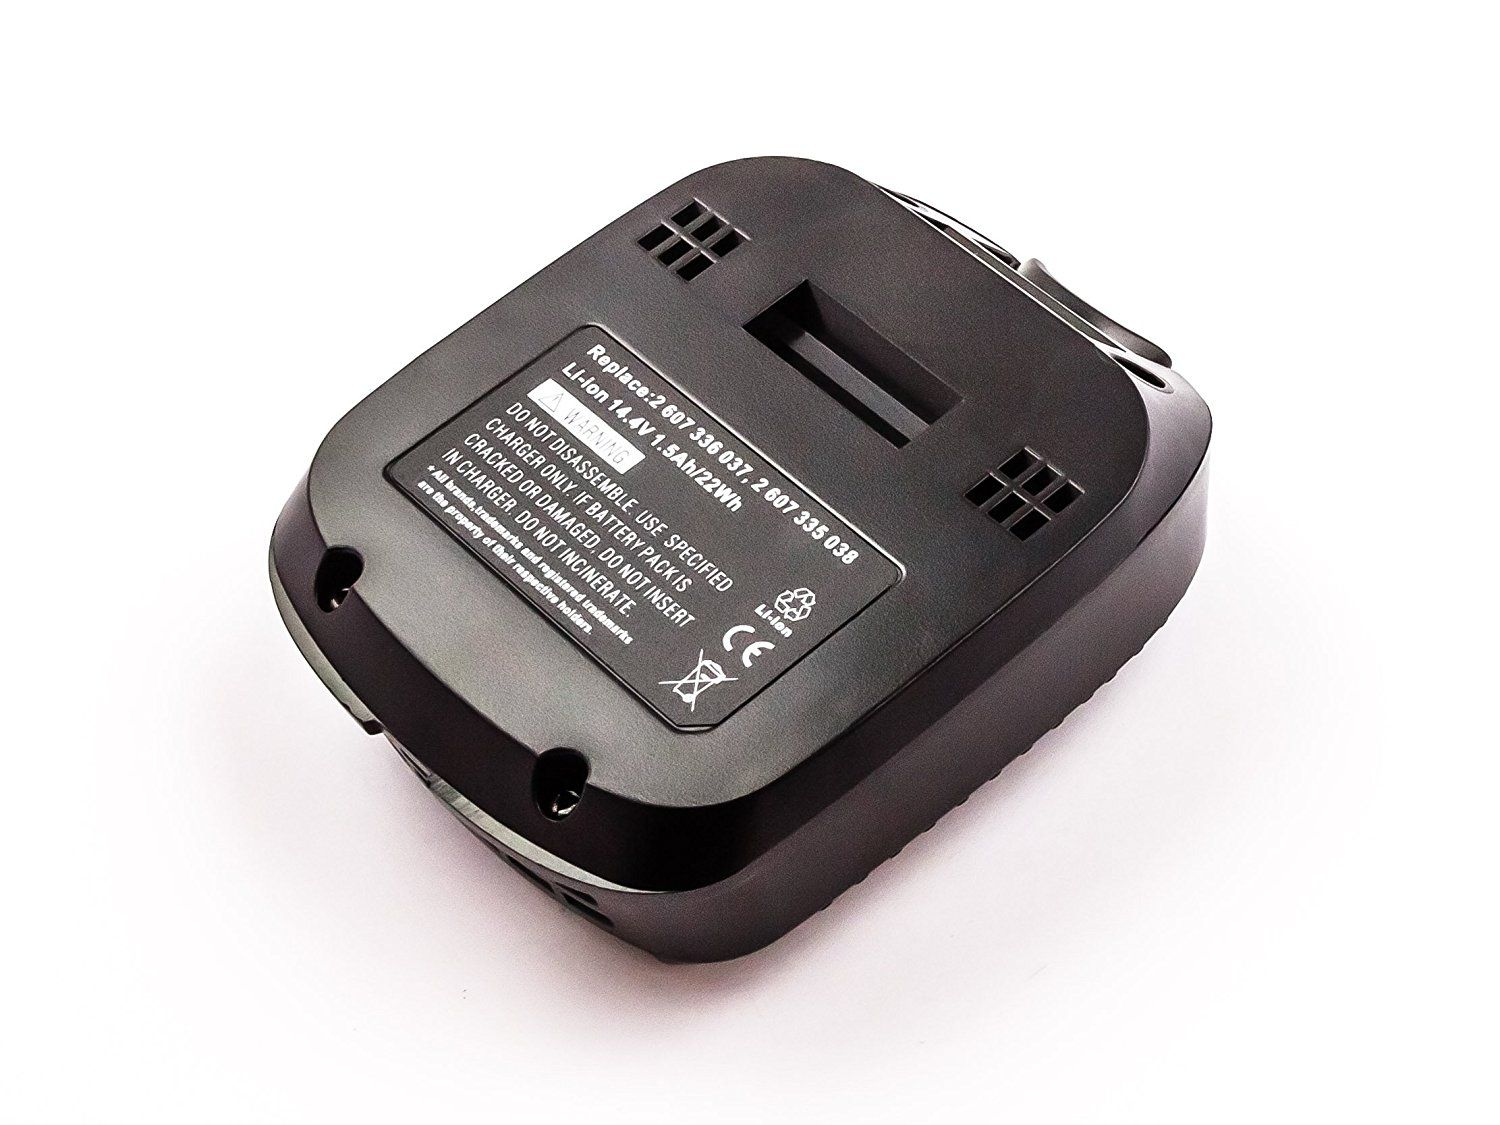 Accupower Battery For Bosch Psr 14 4li 2607335038 P233ch Gardening Supplies Garden Tools Bosch